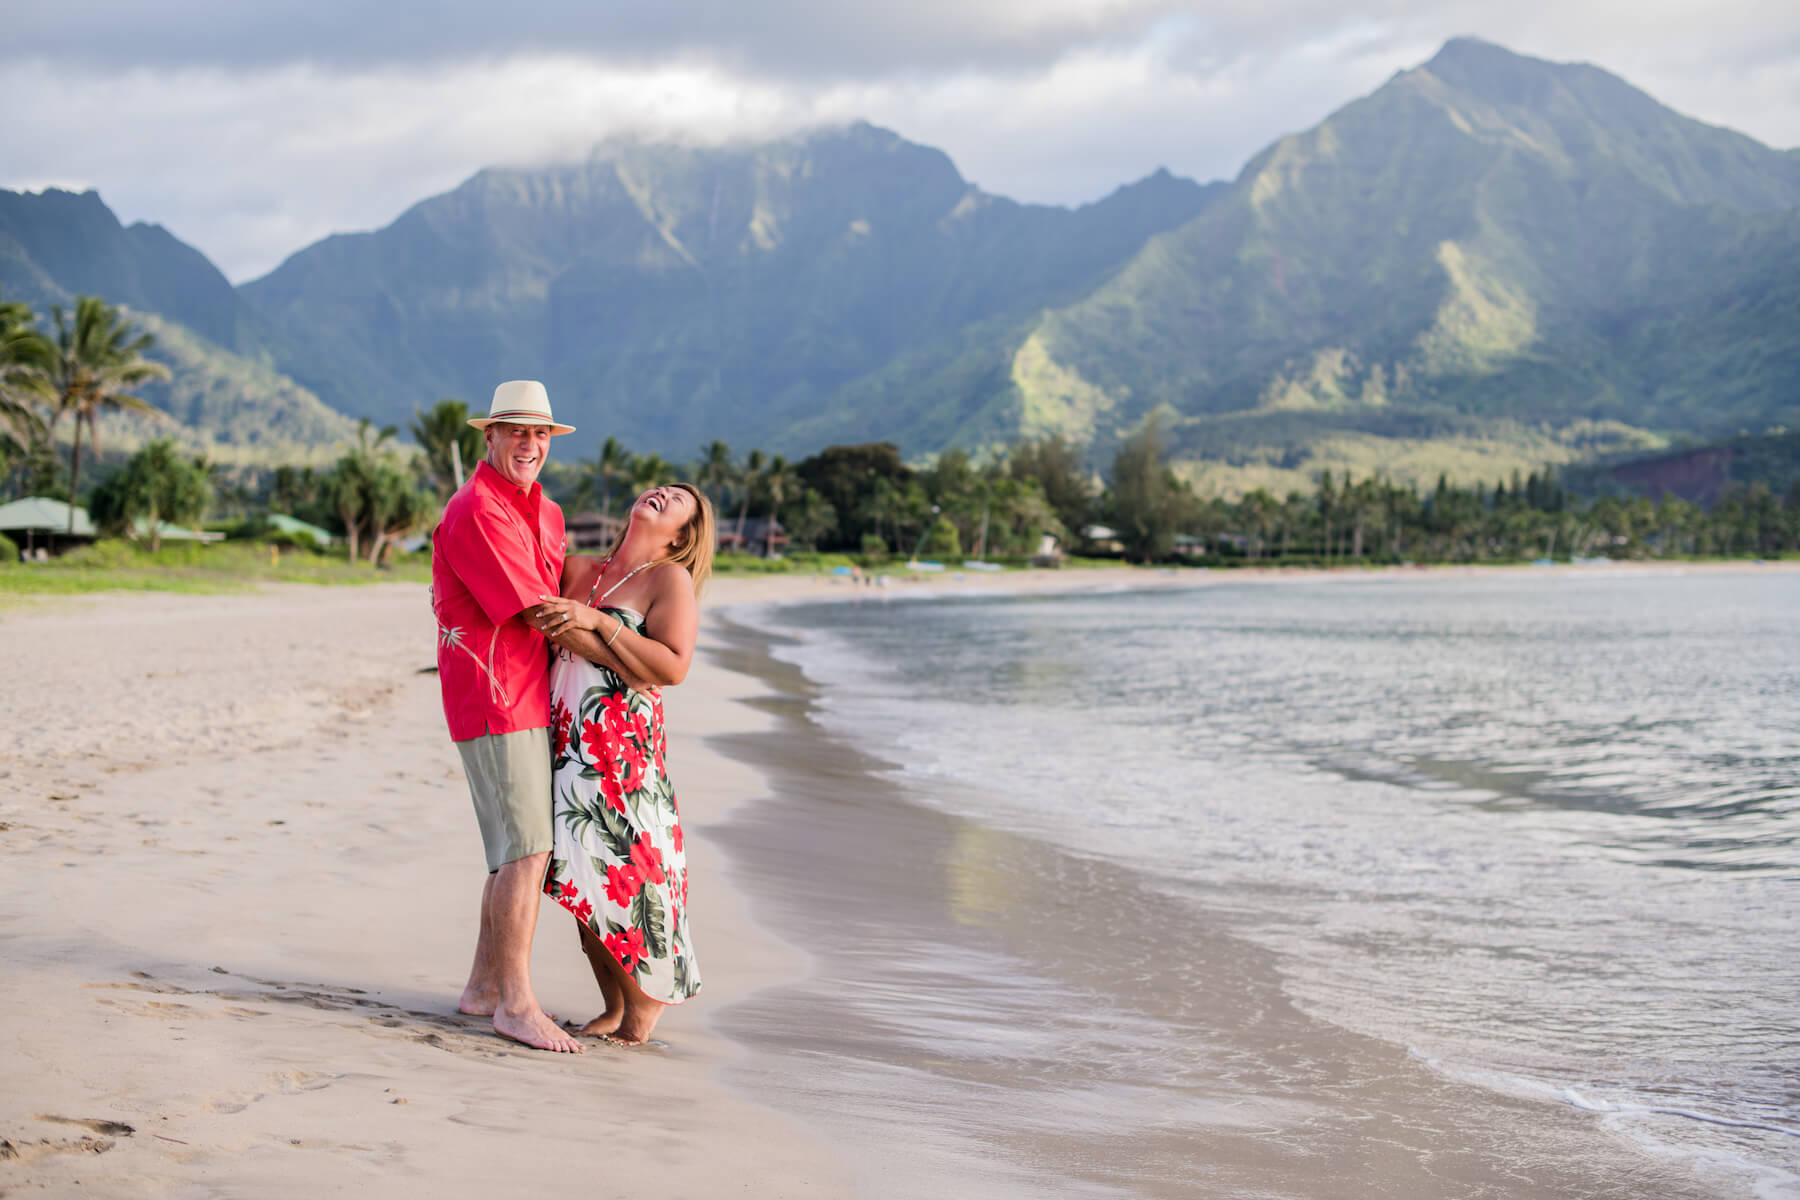 couple on a beach in Kauai Hawaii